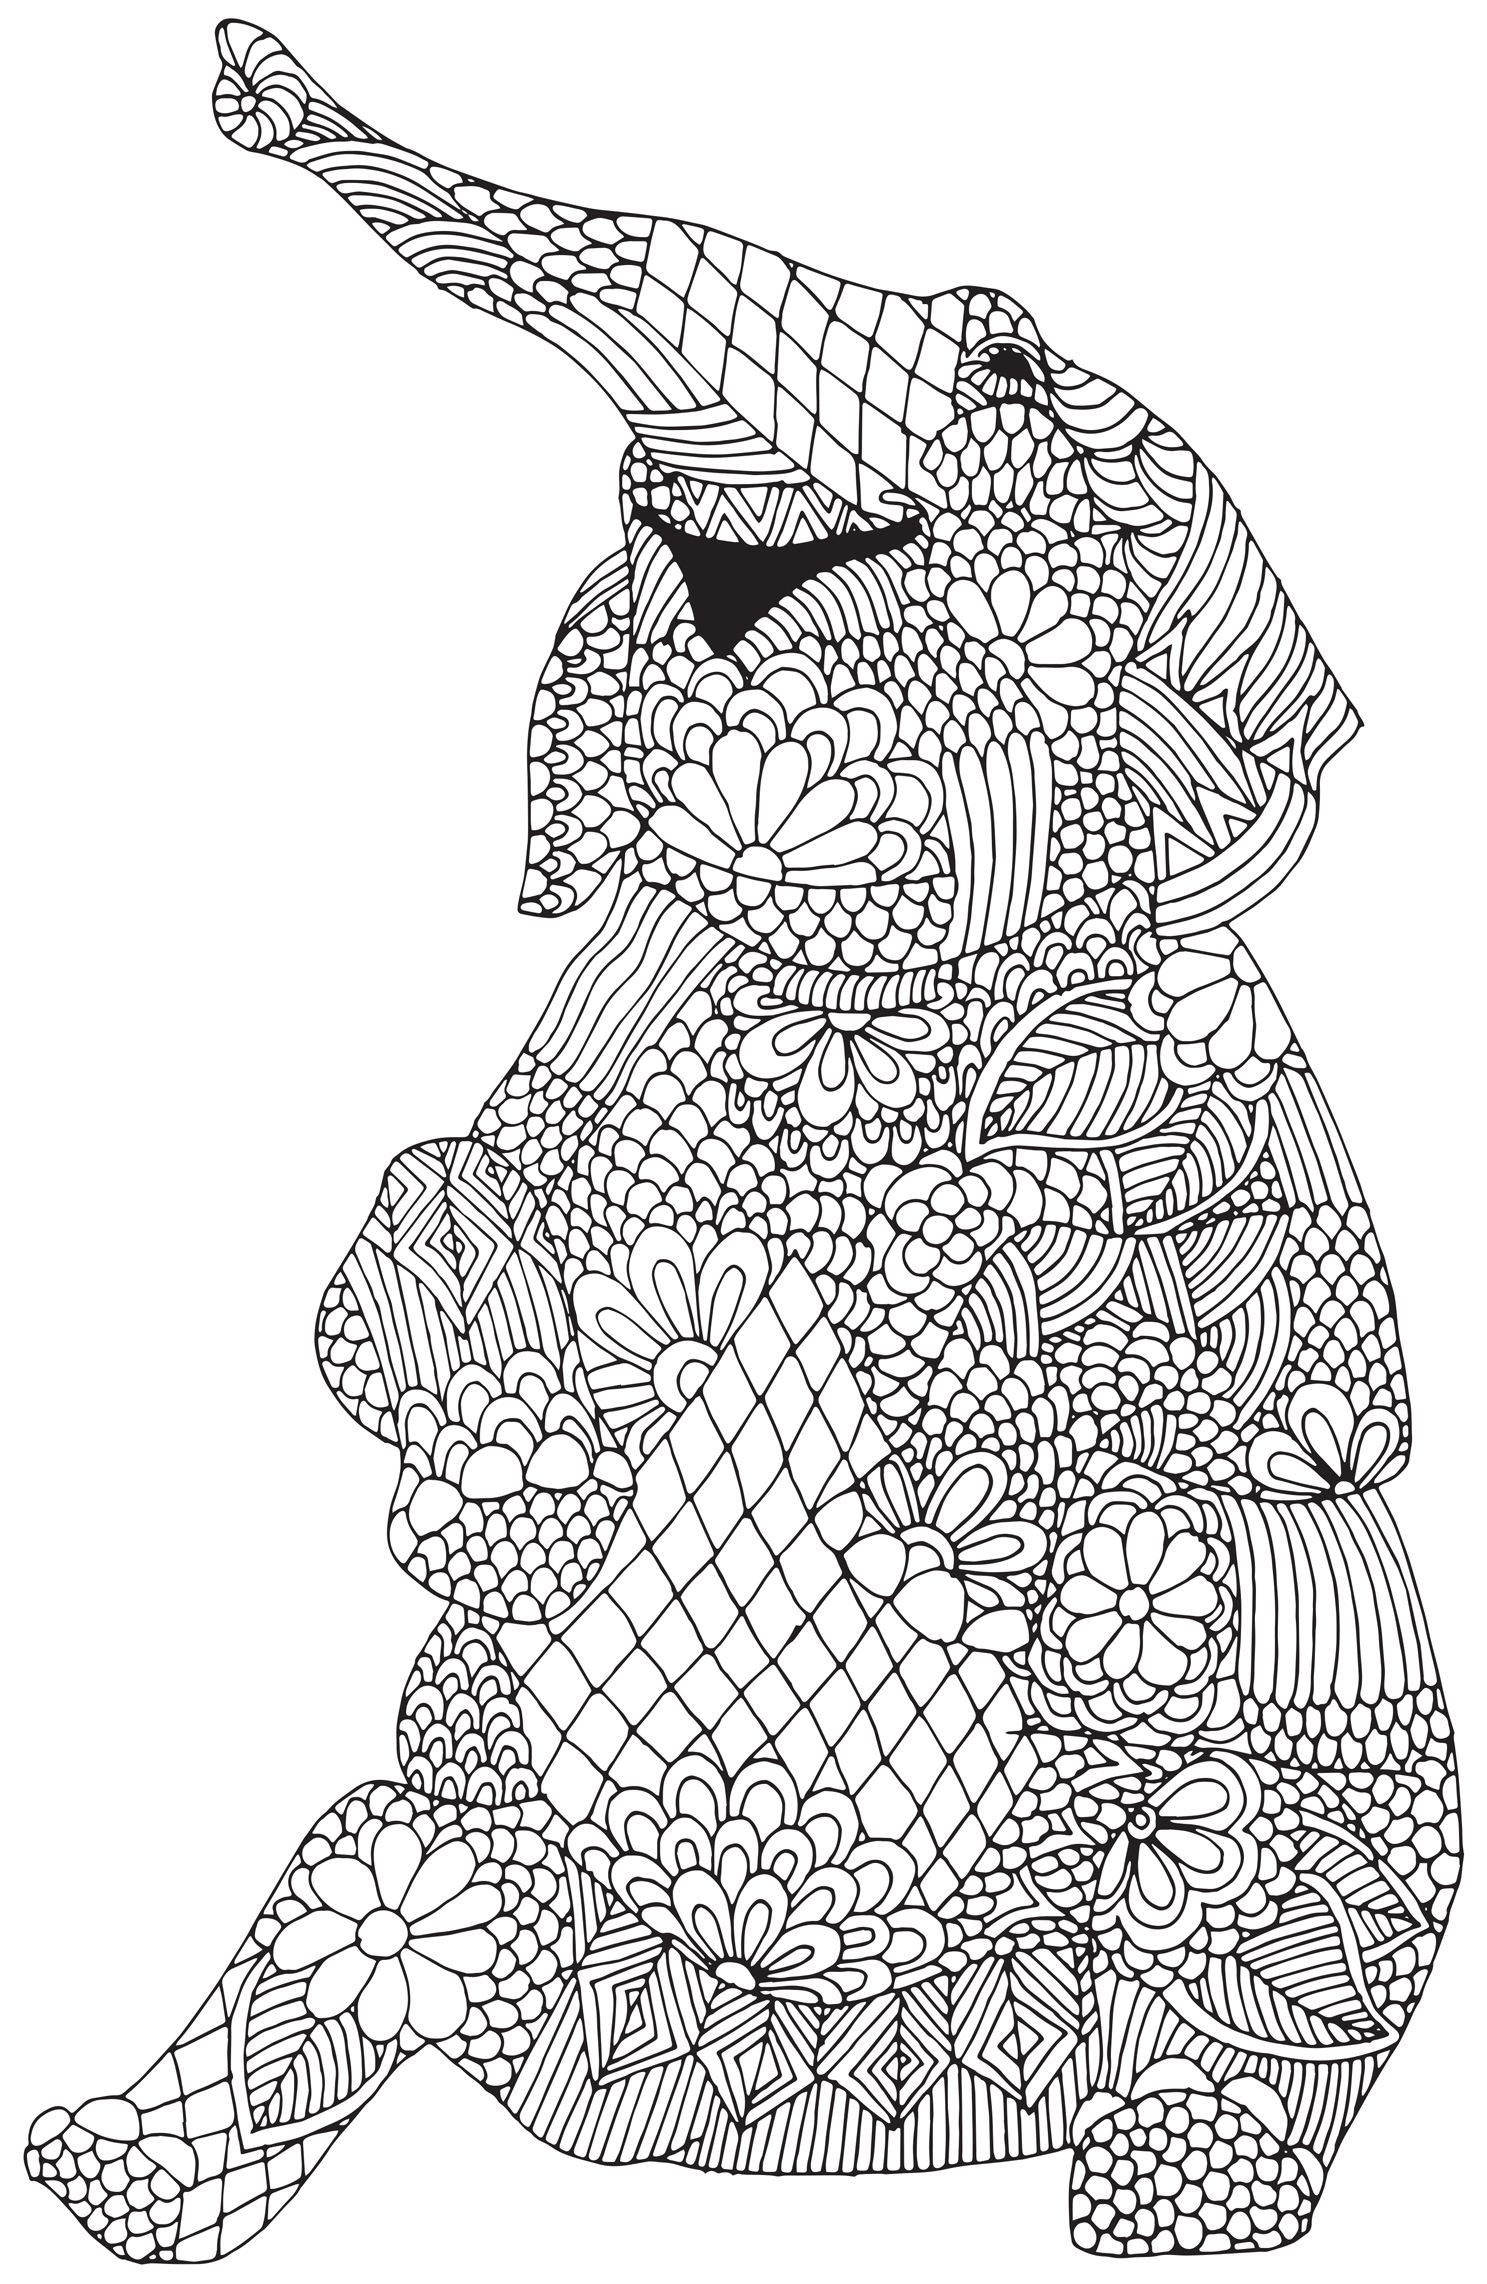 Complicated Elephant Coloring Pages. Happy elephant from  Awesome Animals Abstract Doodle Zentangle Coloring pages colouring adult detailed advanced